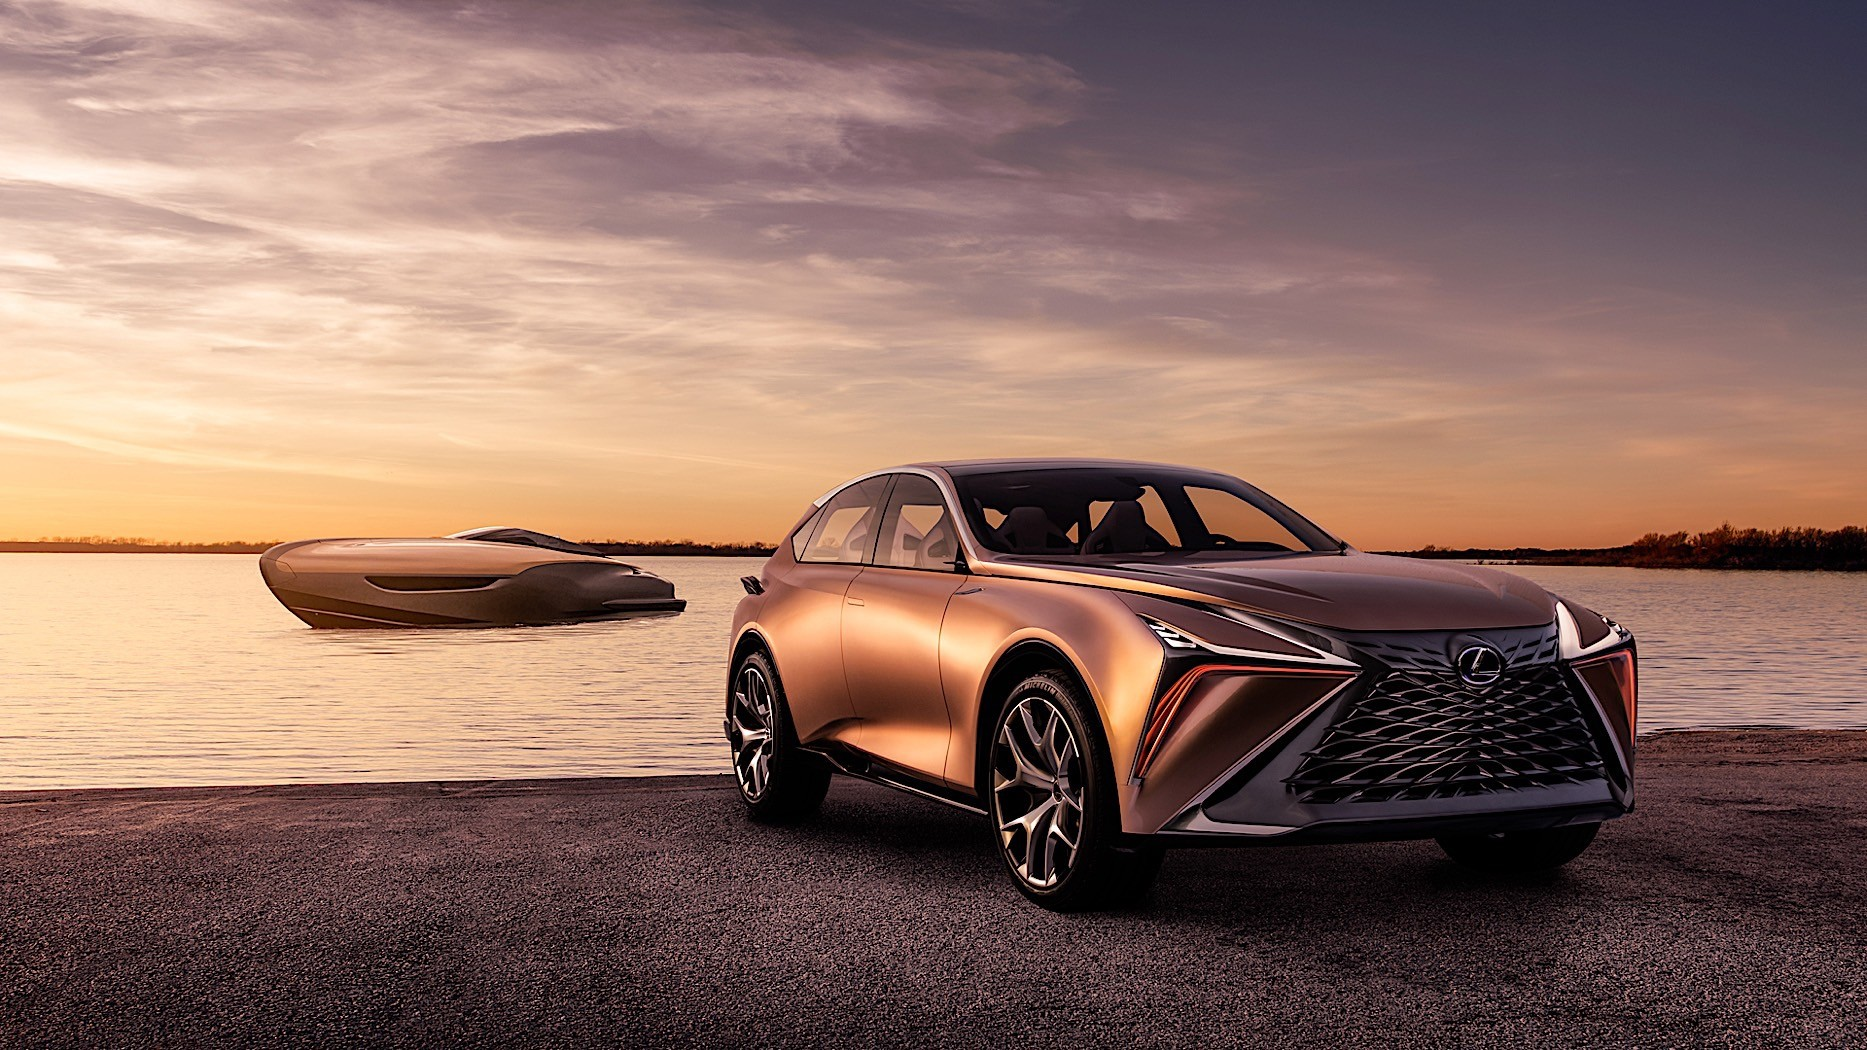 Green Light Auto >> Lexus Sport Yacht Concept Gets Green Light for Production - autoevolution